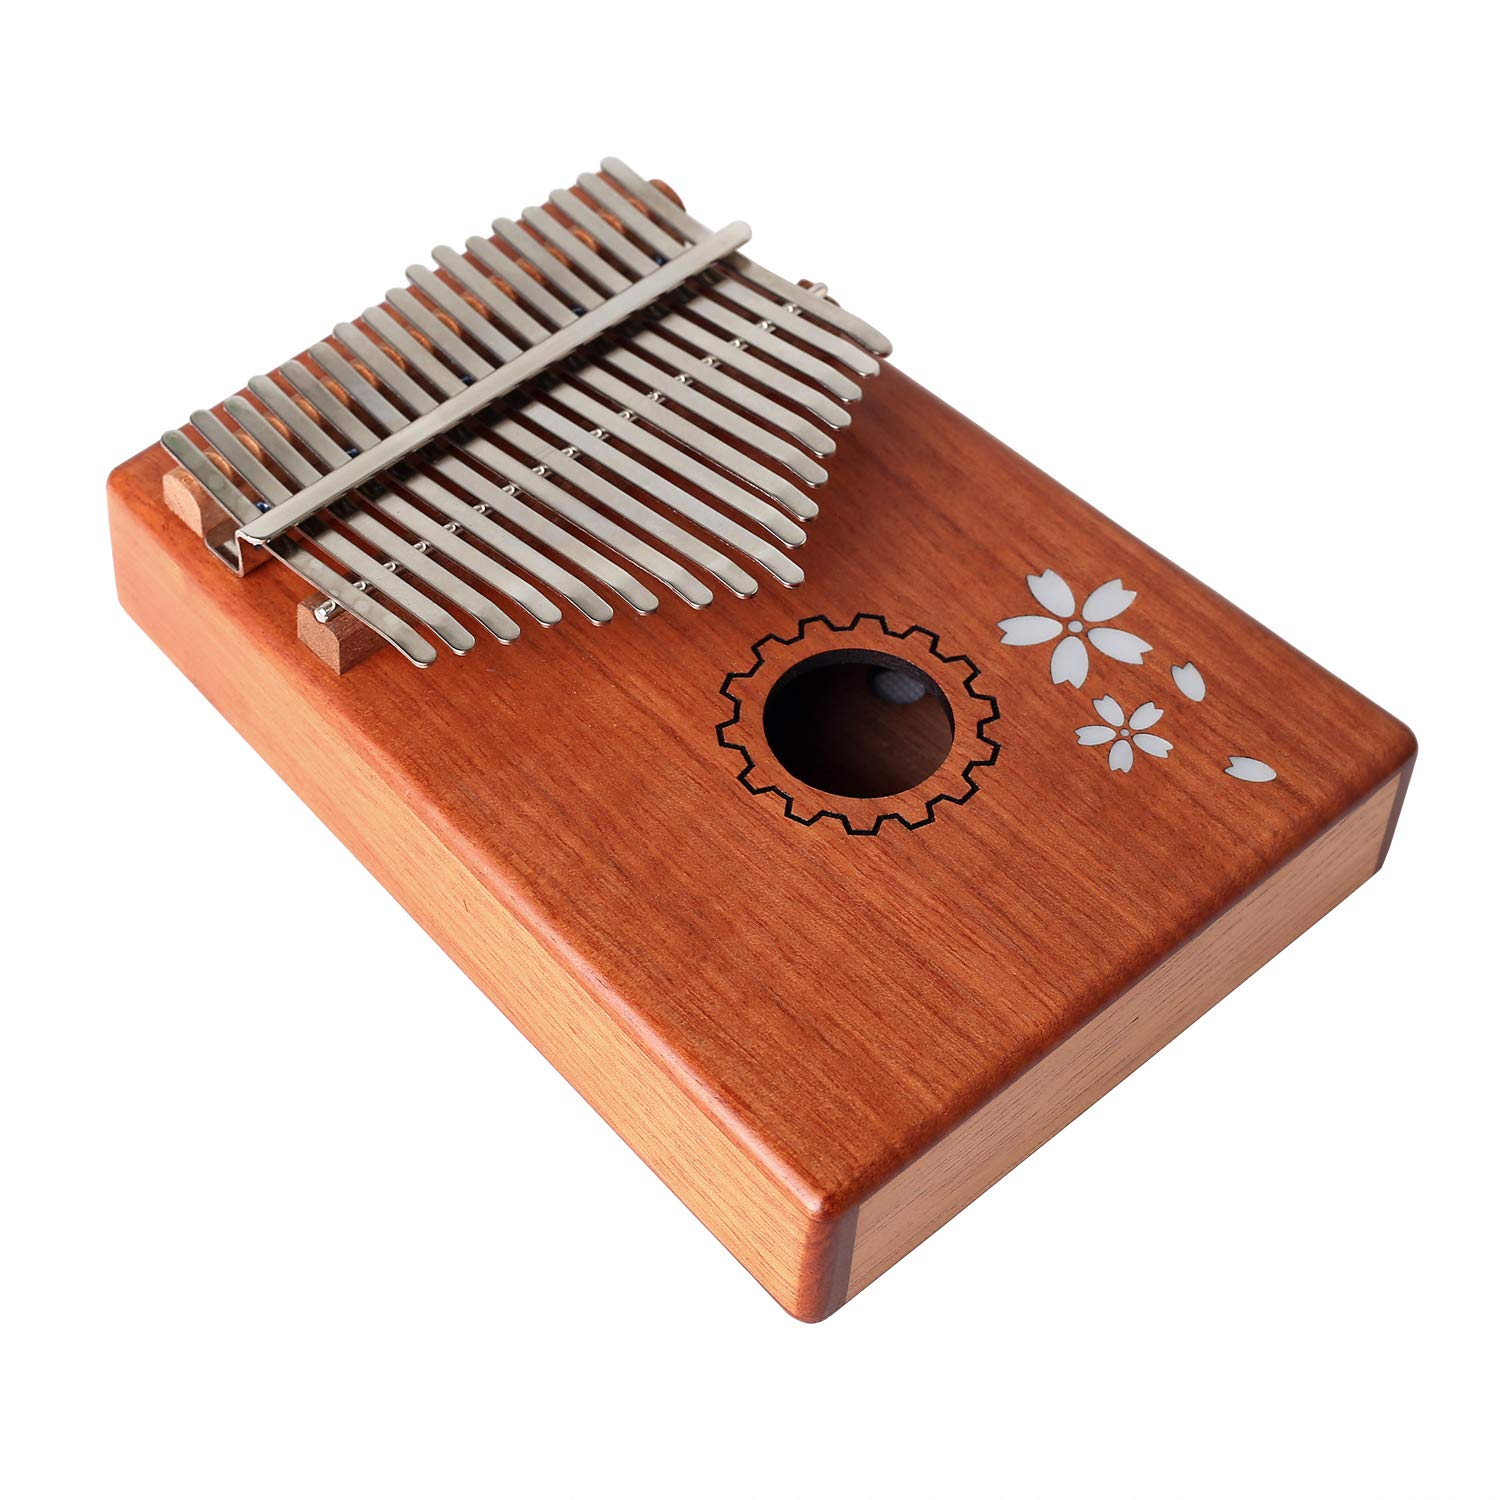 Kalimba Thumb Piano - Portable Music Instrument Gift for Kids,Beginners, Friends,Lovers - DIY and Study Music(17 Keys,Easy to Learn, Relax Your Boby)